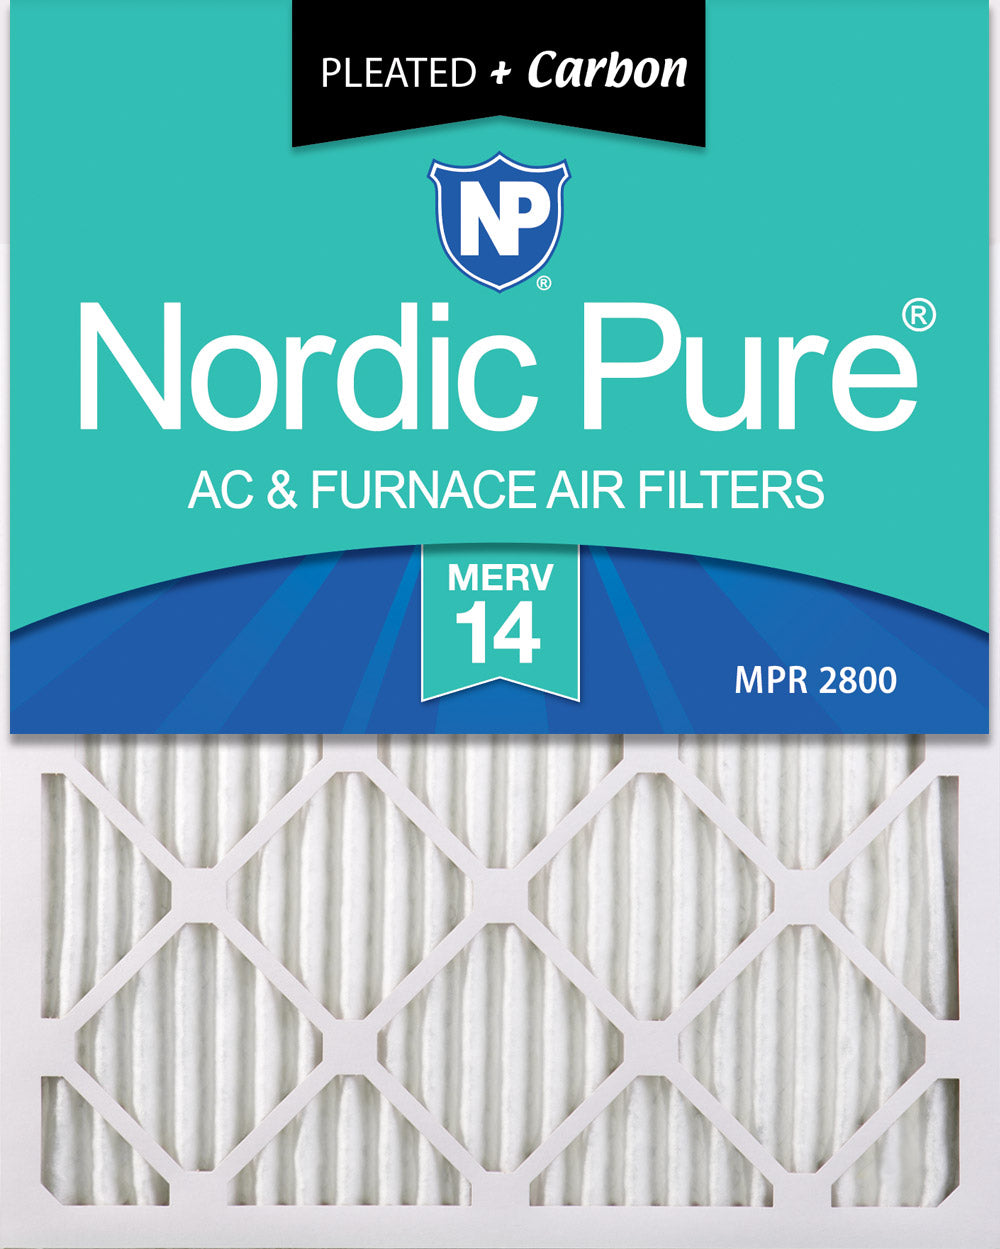 20x24x1 Pleated Air Filters MERV 14 Plus Carbon 12 Pack